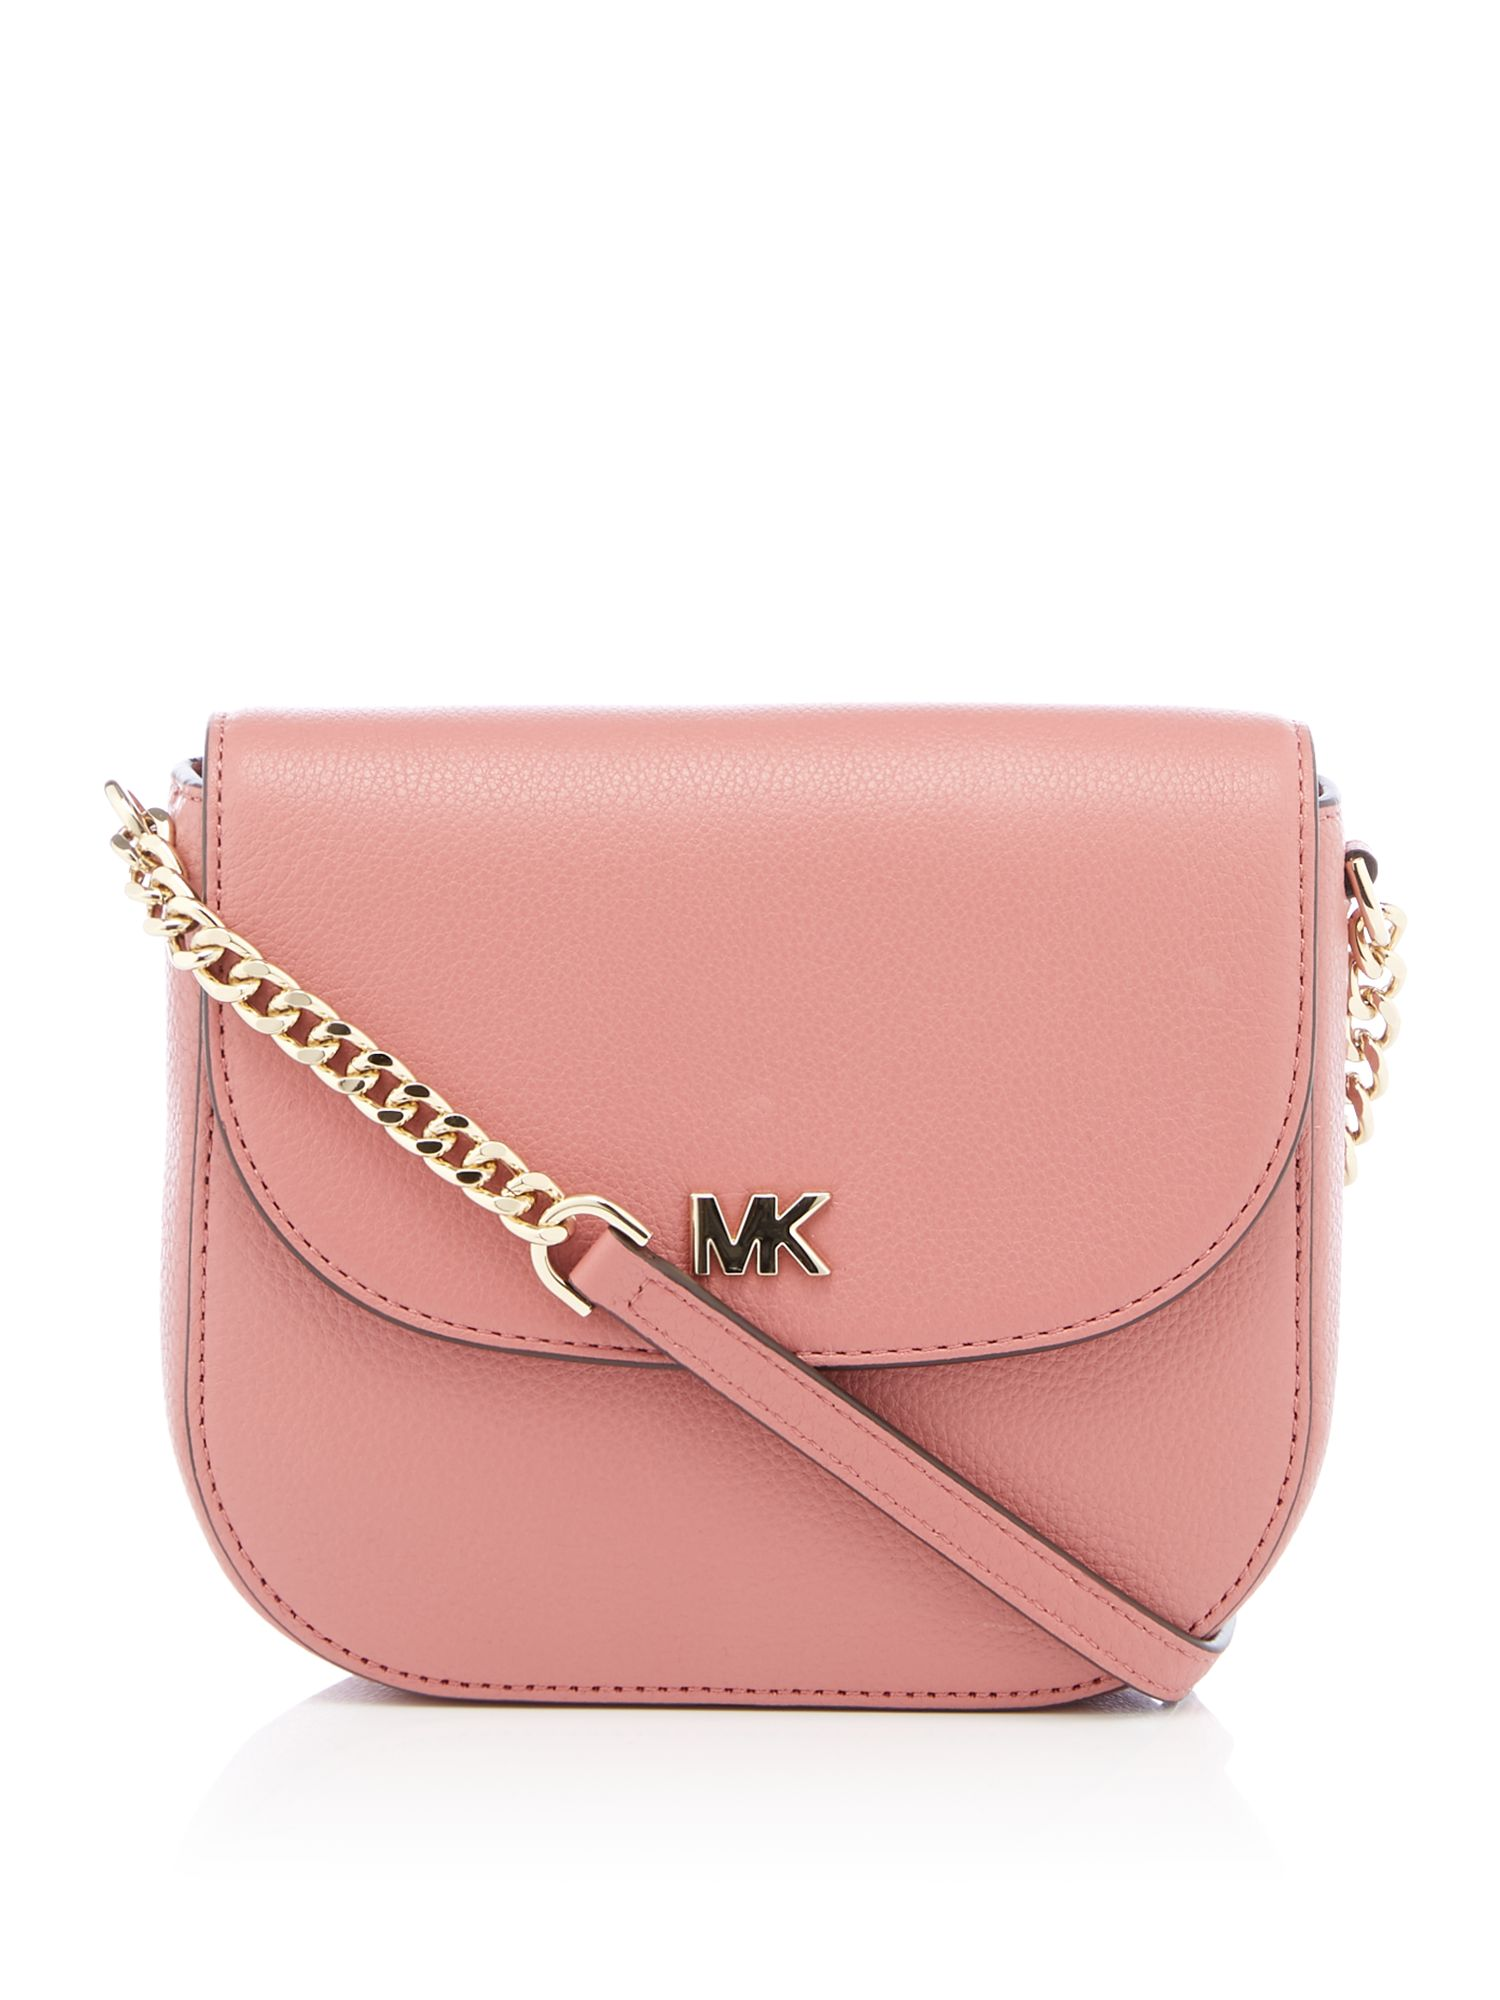 michael kors bags michael kors luggage house of fraser rh houseoffraser co uk